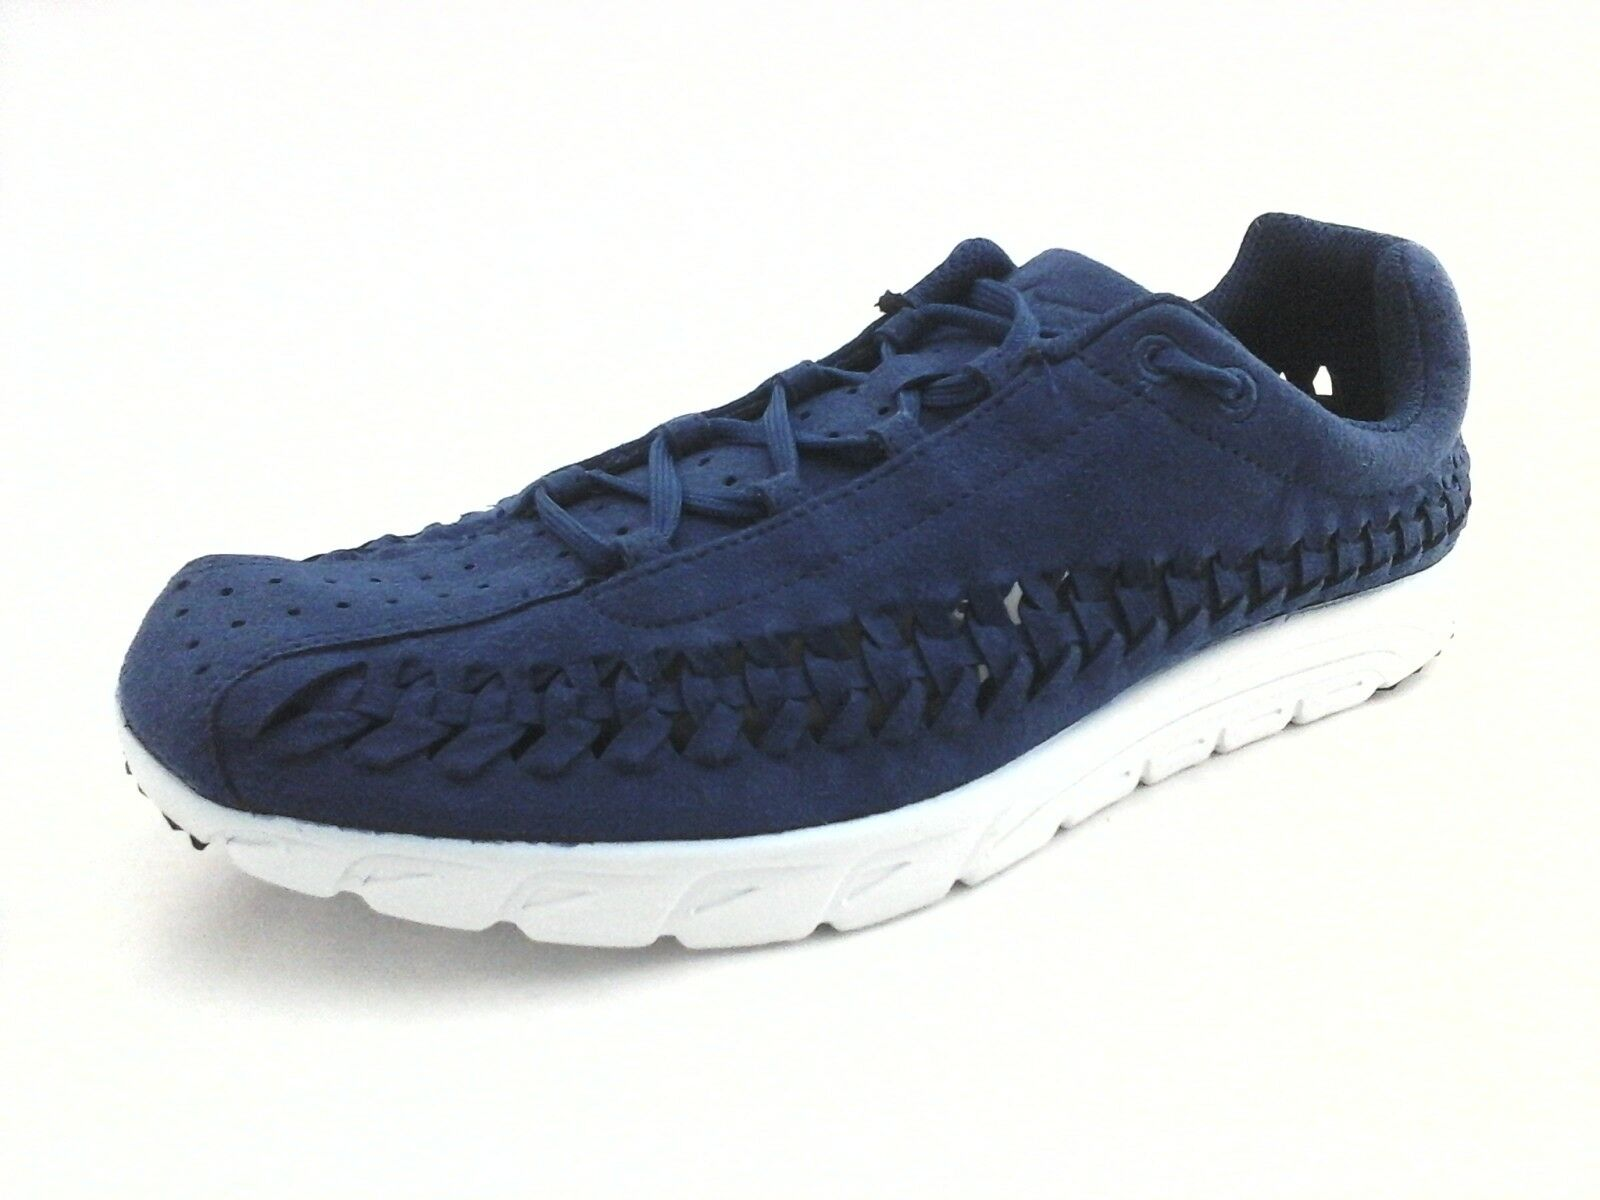 NIKE shoes Mayfly Woven bluee Suede 833132-400 Sneakers Men's US 9.5 EU 43 New